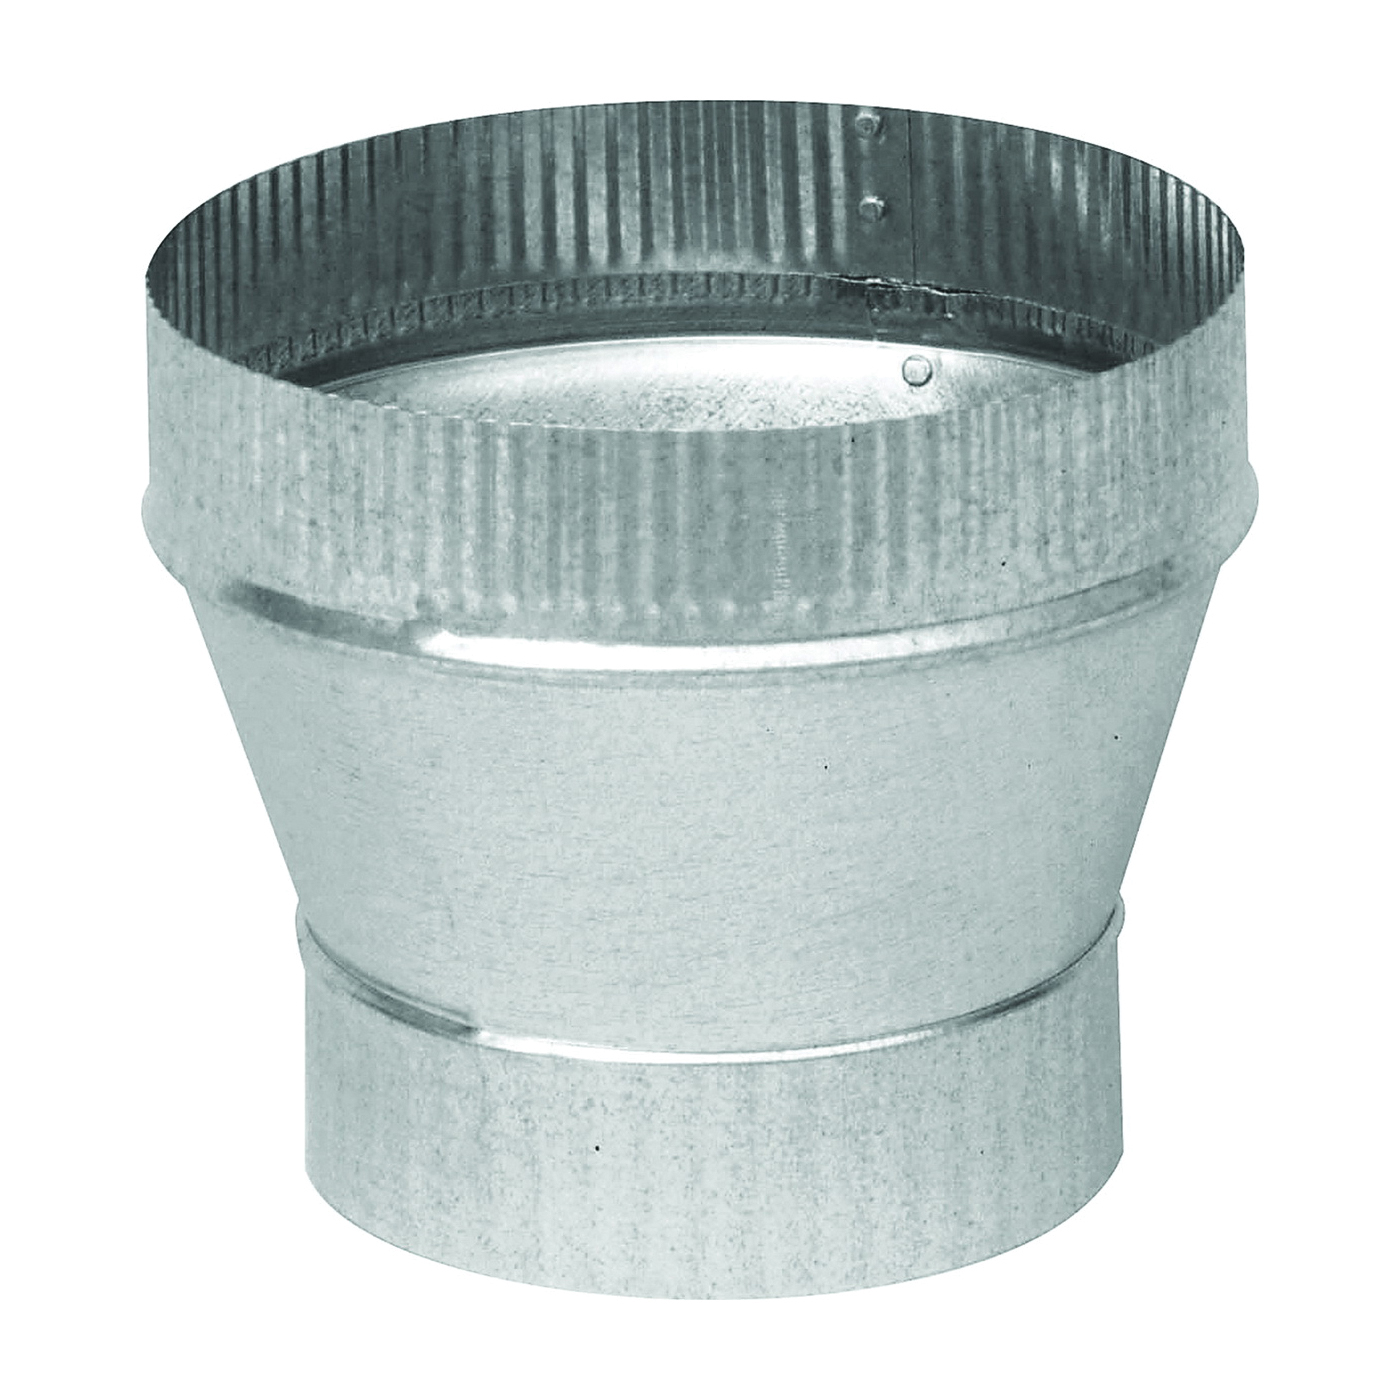 Picture of Imperial GV1361 Furnace Short Increaser, 7 to 8 in Connection, 24 Gauge, Galvanized